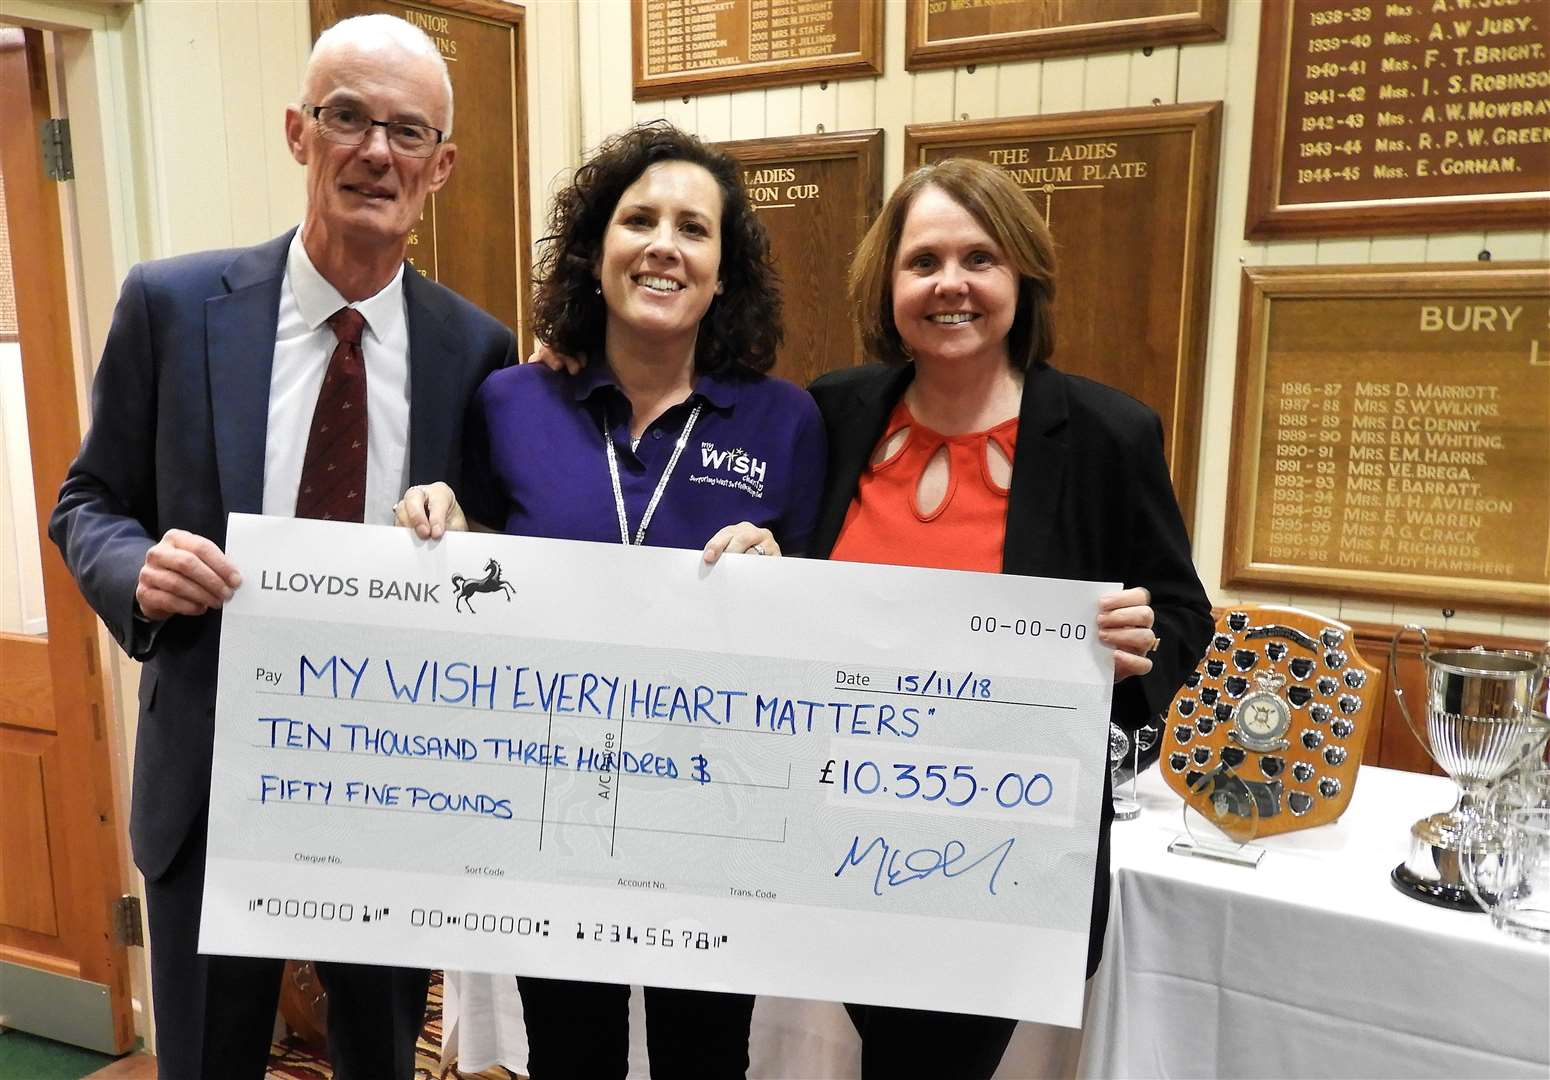 Bury GC Captains Hannah Clark & Ray Coleman presenting a cheque to Sally Daniels from My Wish charity - photo Sandra Stannard (5568604)